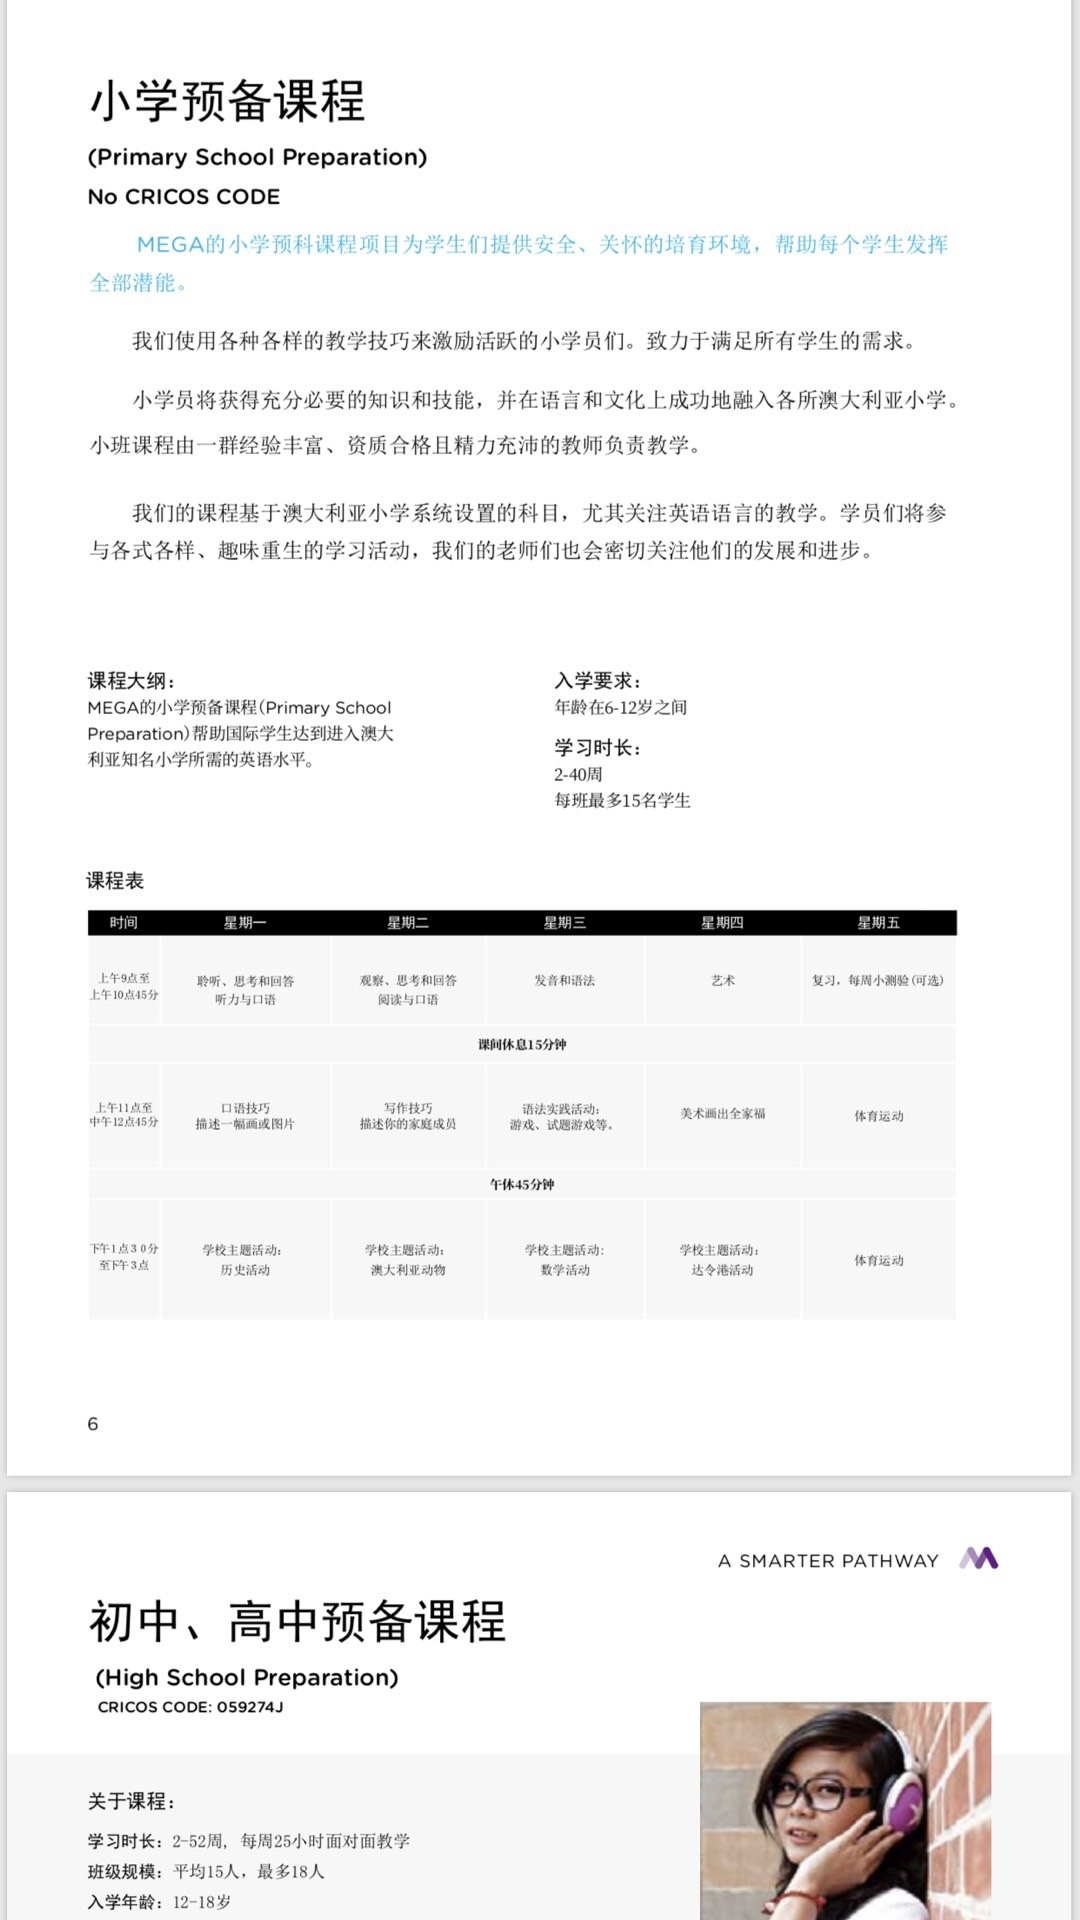 HSP & PSP Brochure translated to simplified Chinese › MEGA